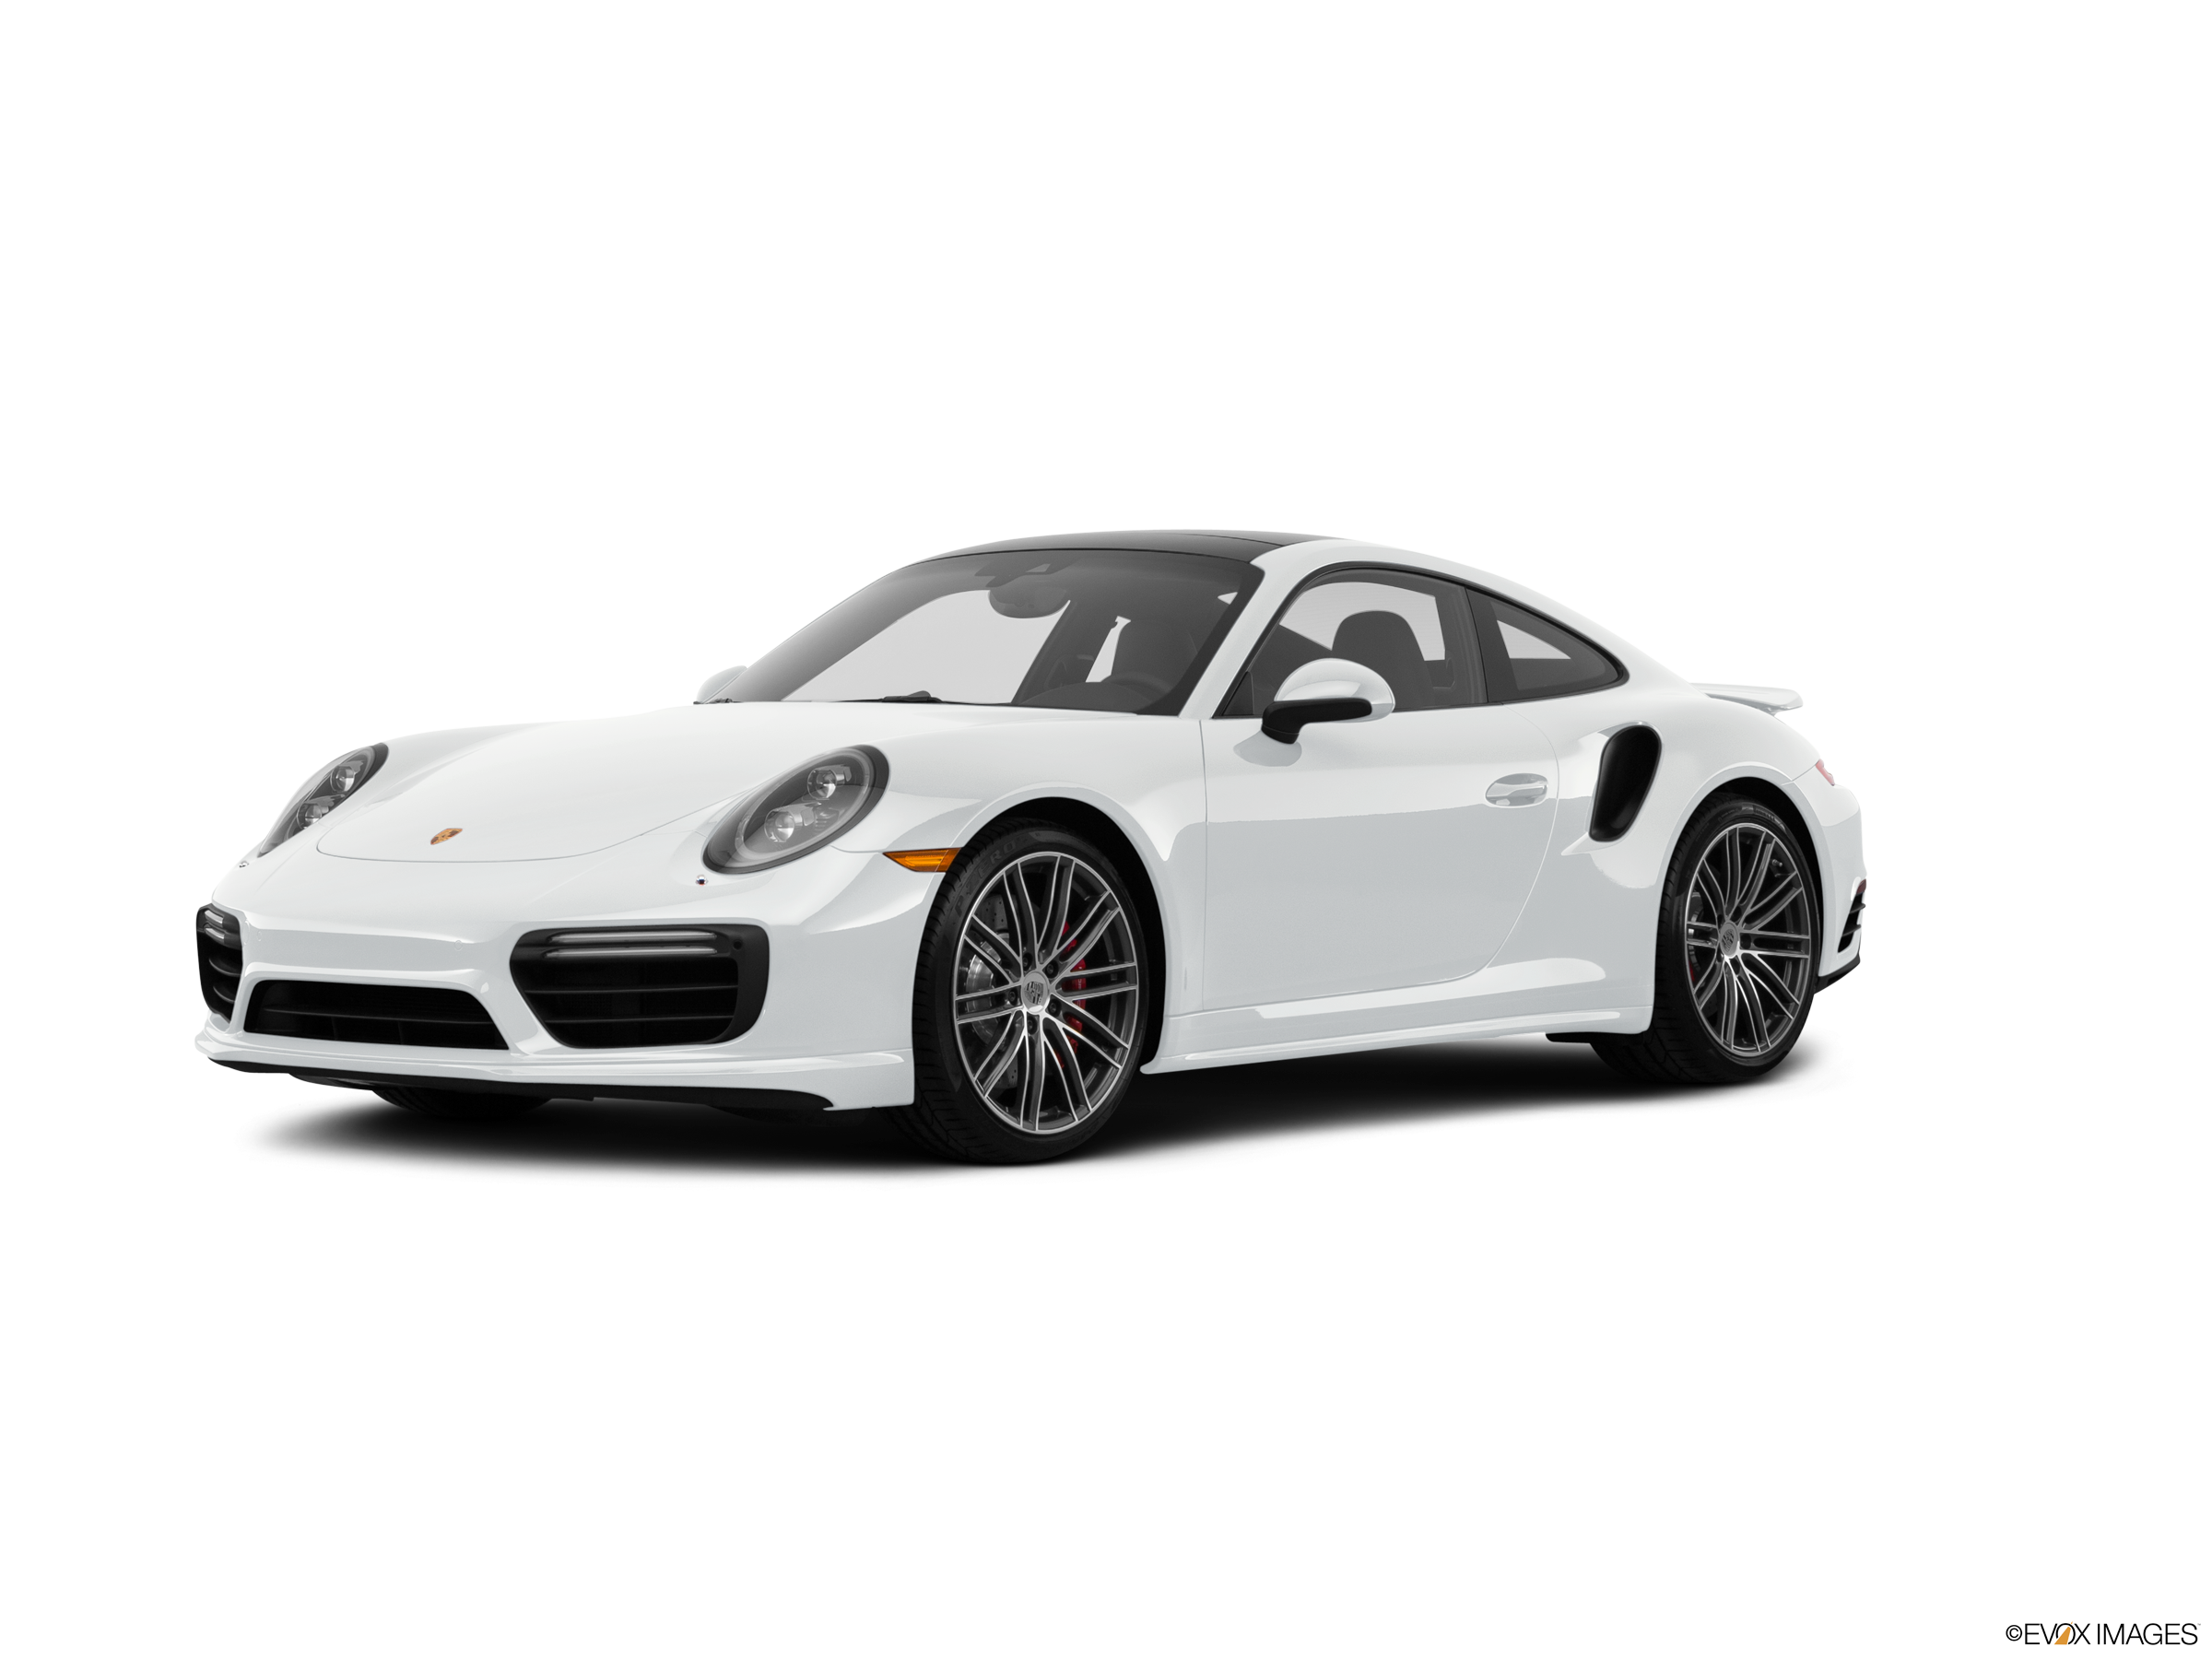 Highest Horsepower Coupes of 2019 - 2019 Porsche 911